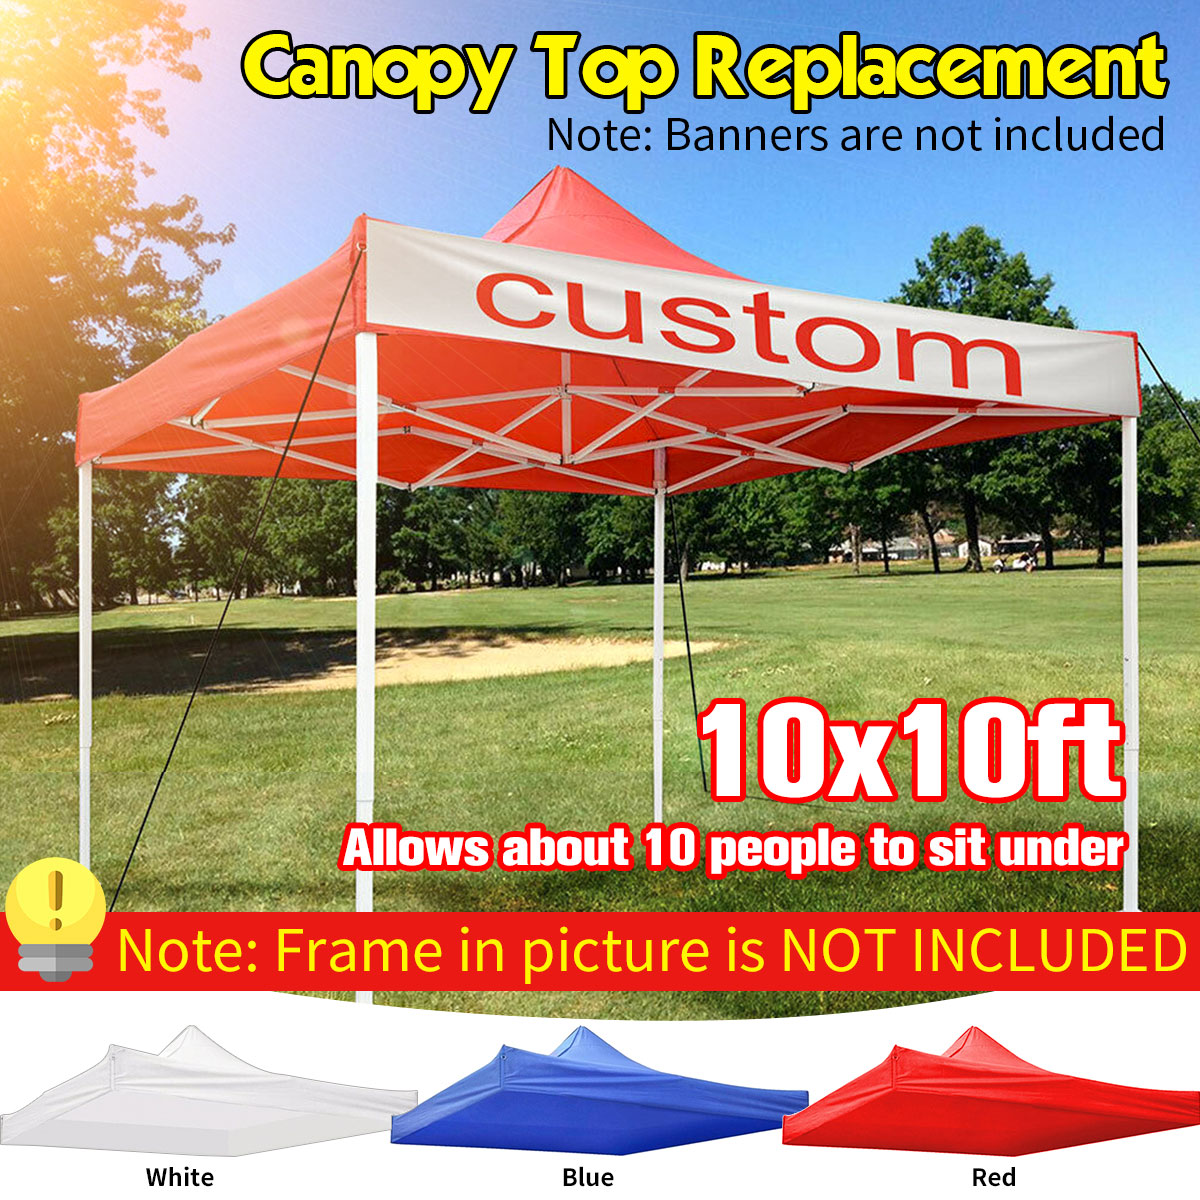 New 3x3m Gazebo Tent Without Frame Waterproof Garden Tent Gazebo Canopy Outdoor Marquee Market Tent Shade Party Pawilon Ogrodowy